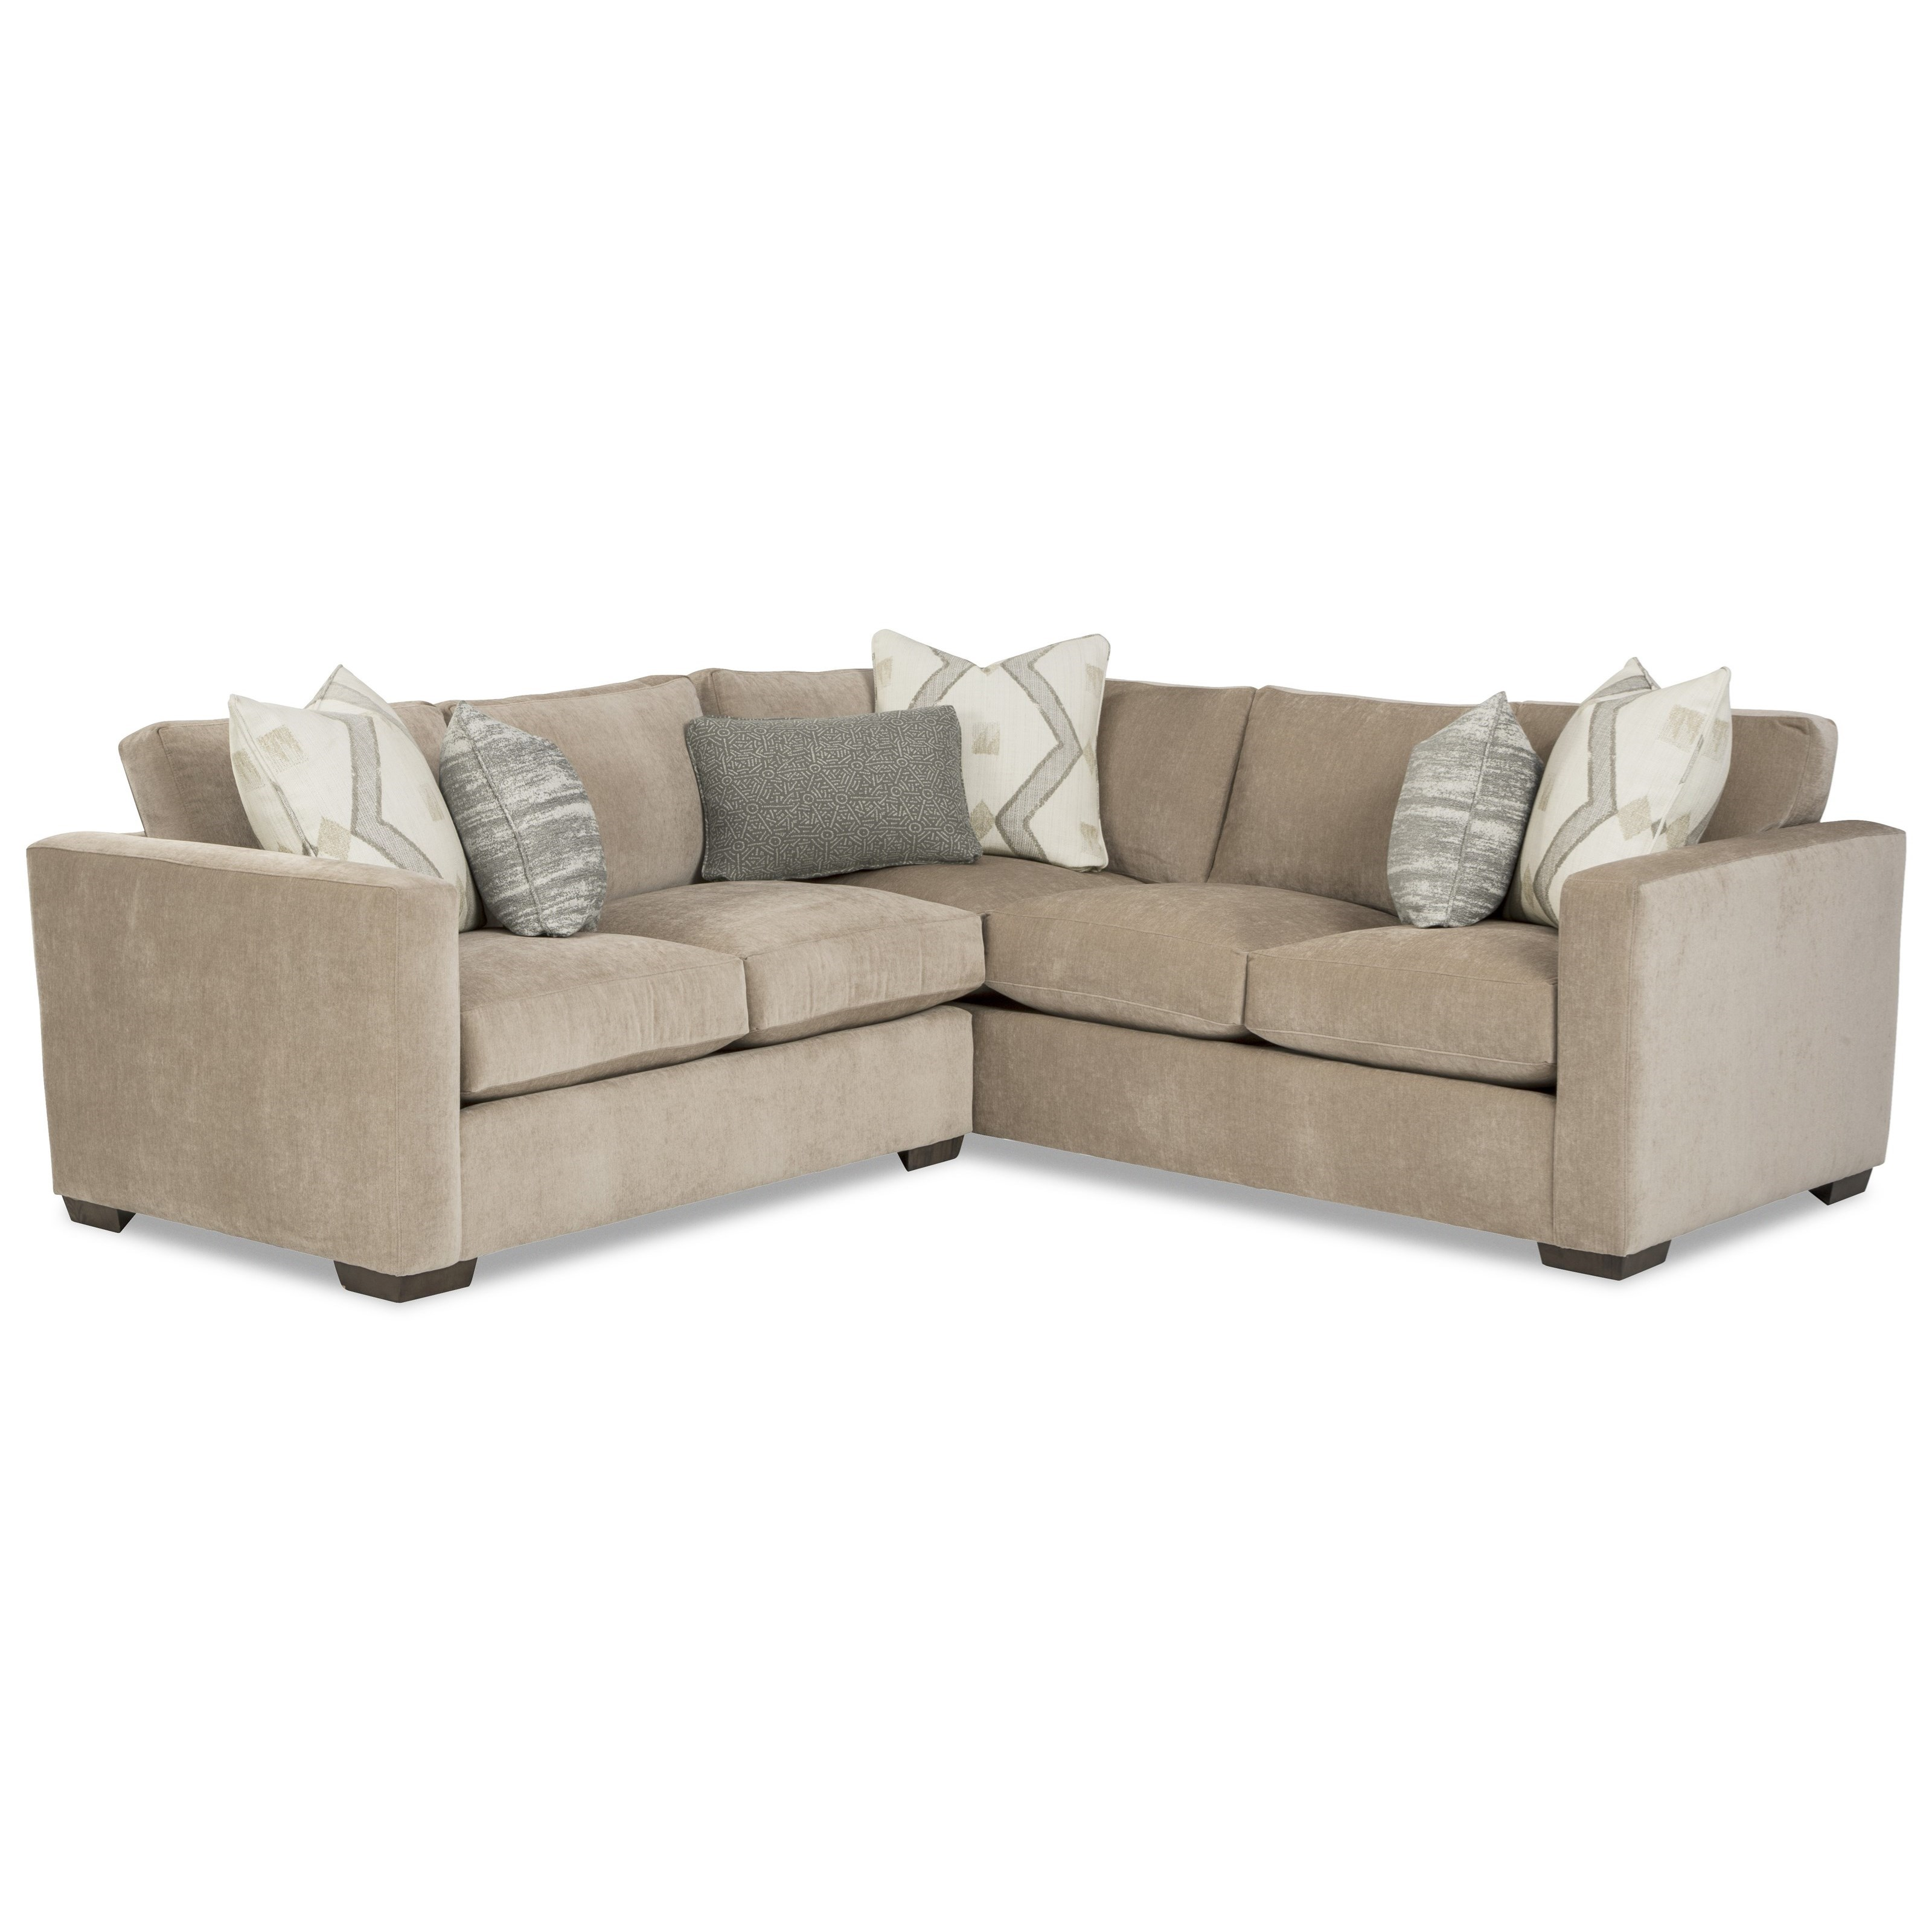 792750BD 2-Piece Sectional with RAF Corner Sofa by Craftmaster at Prime Brothers Furniture